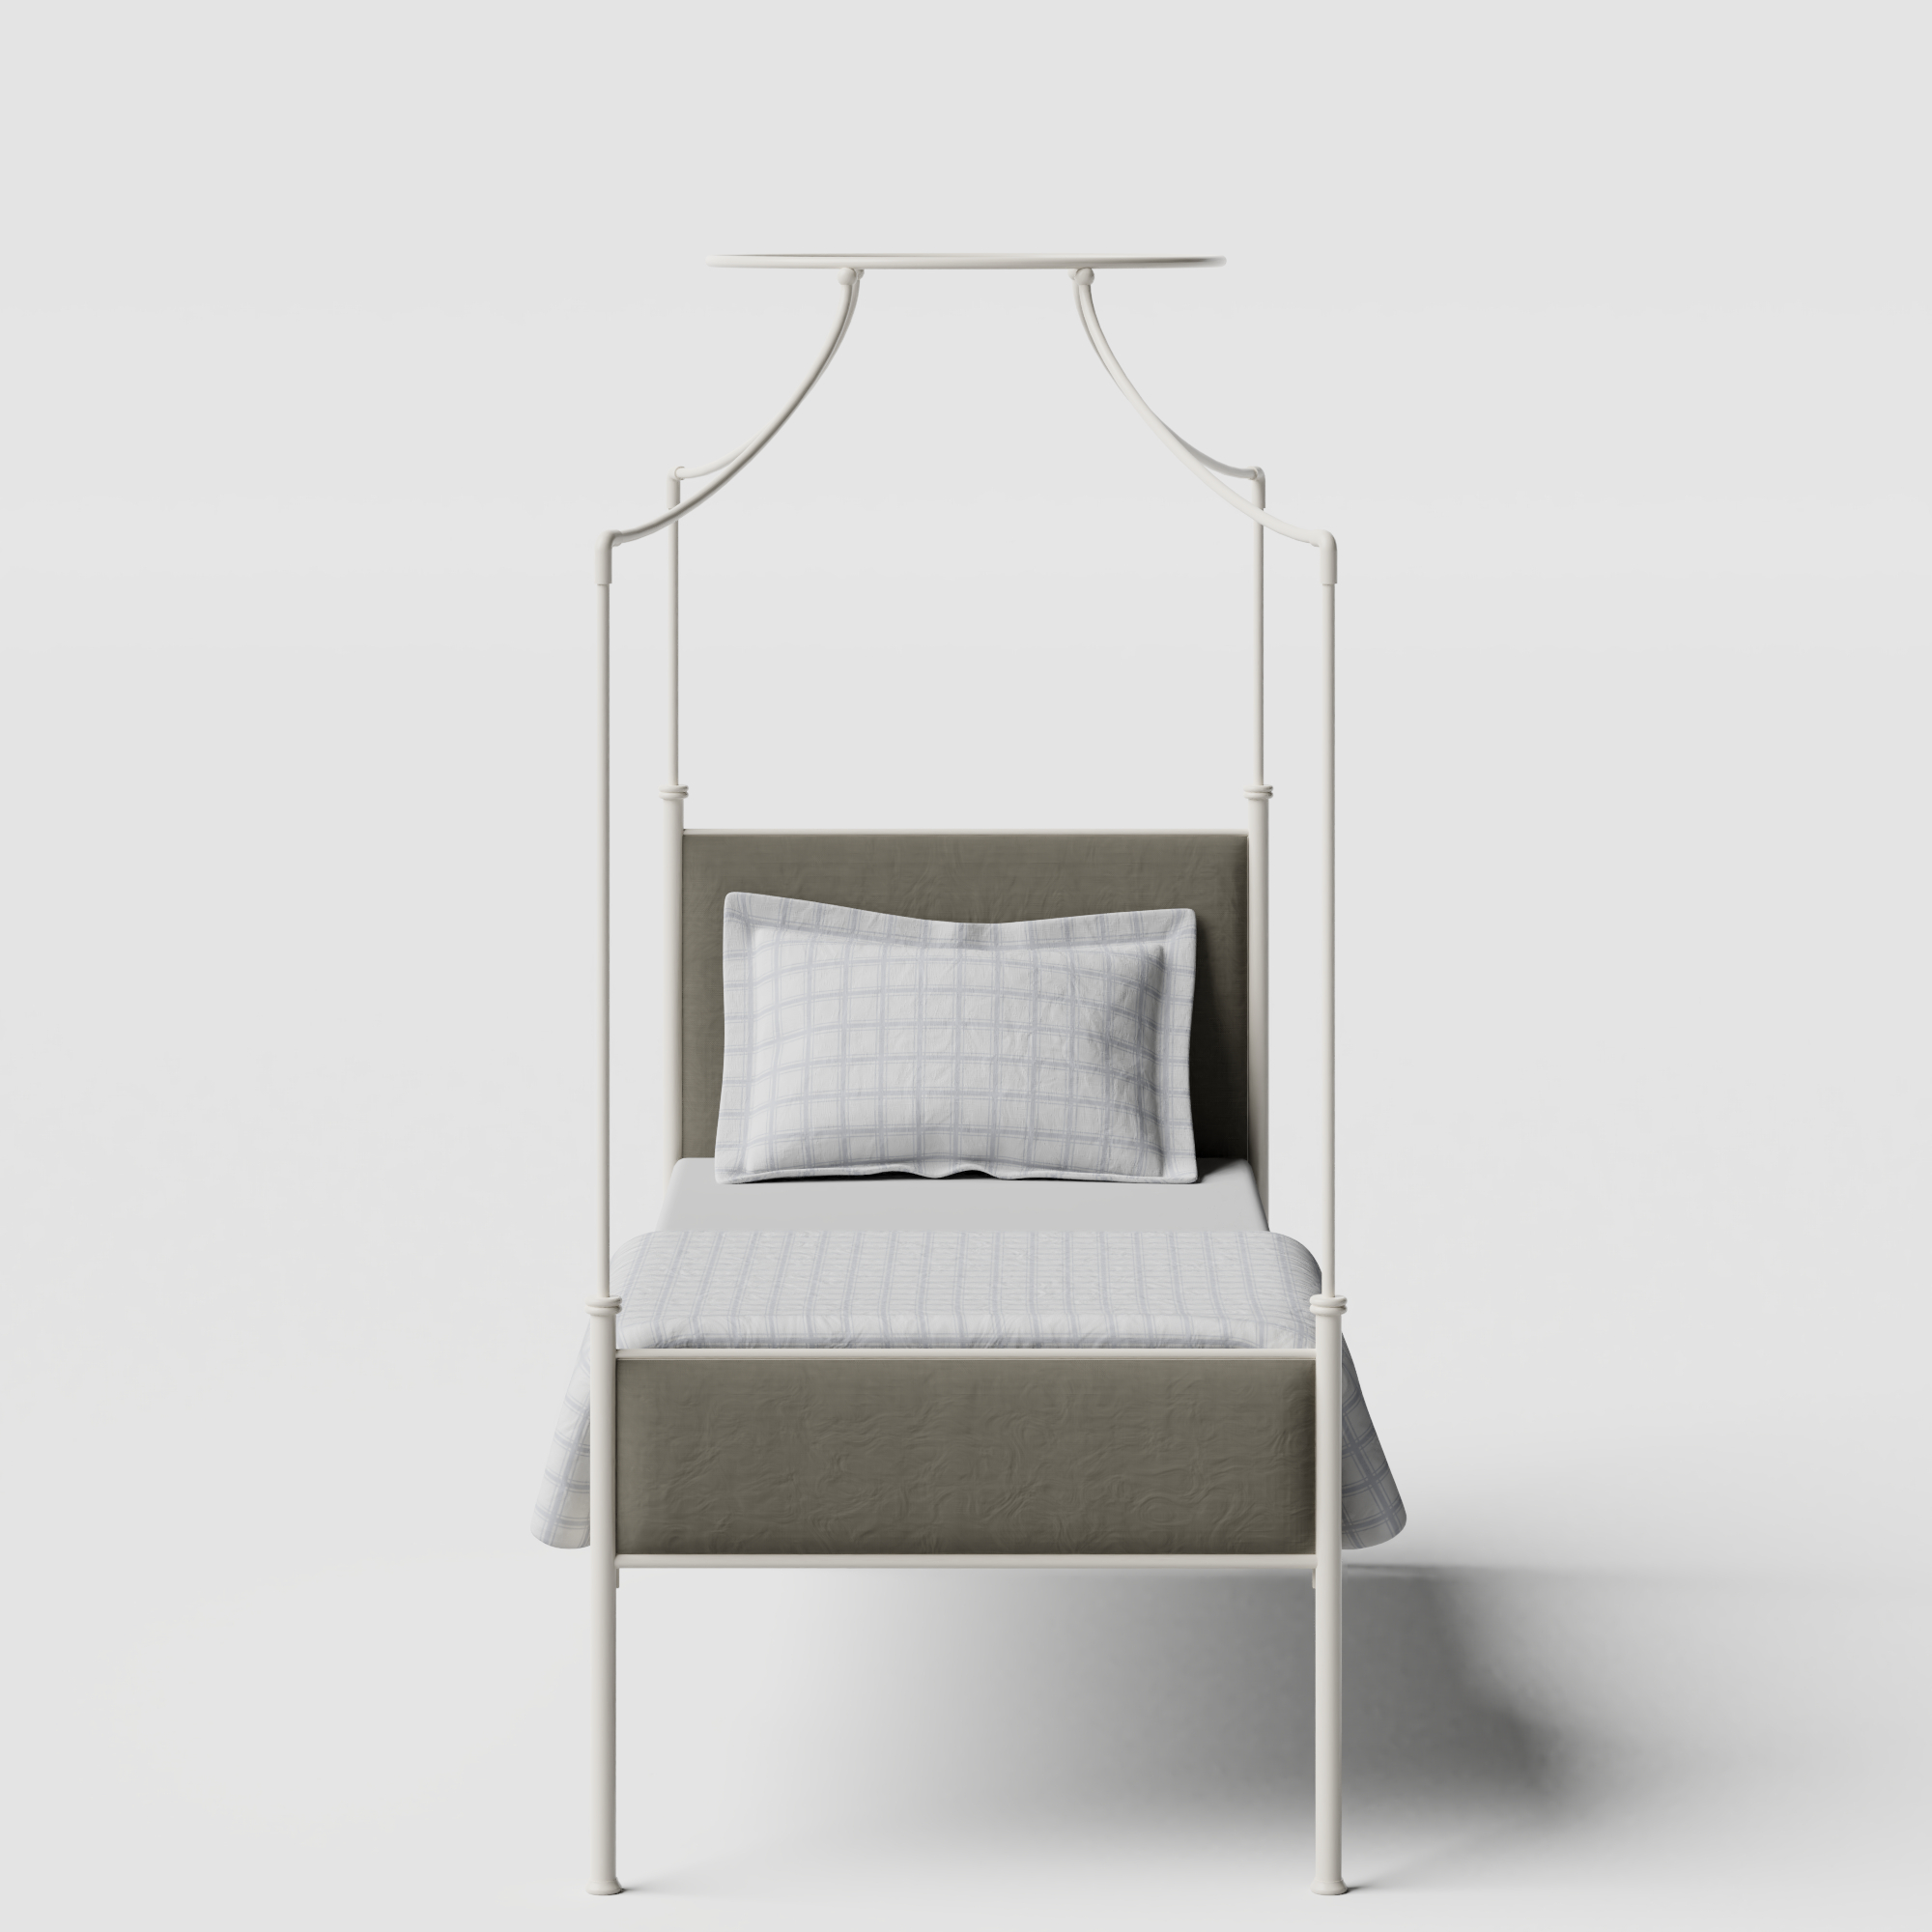 Waterloo iron/metal single bed in ivory